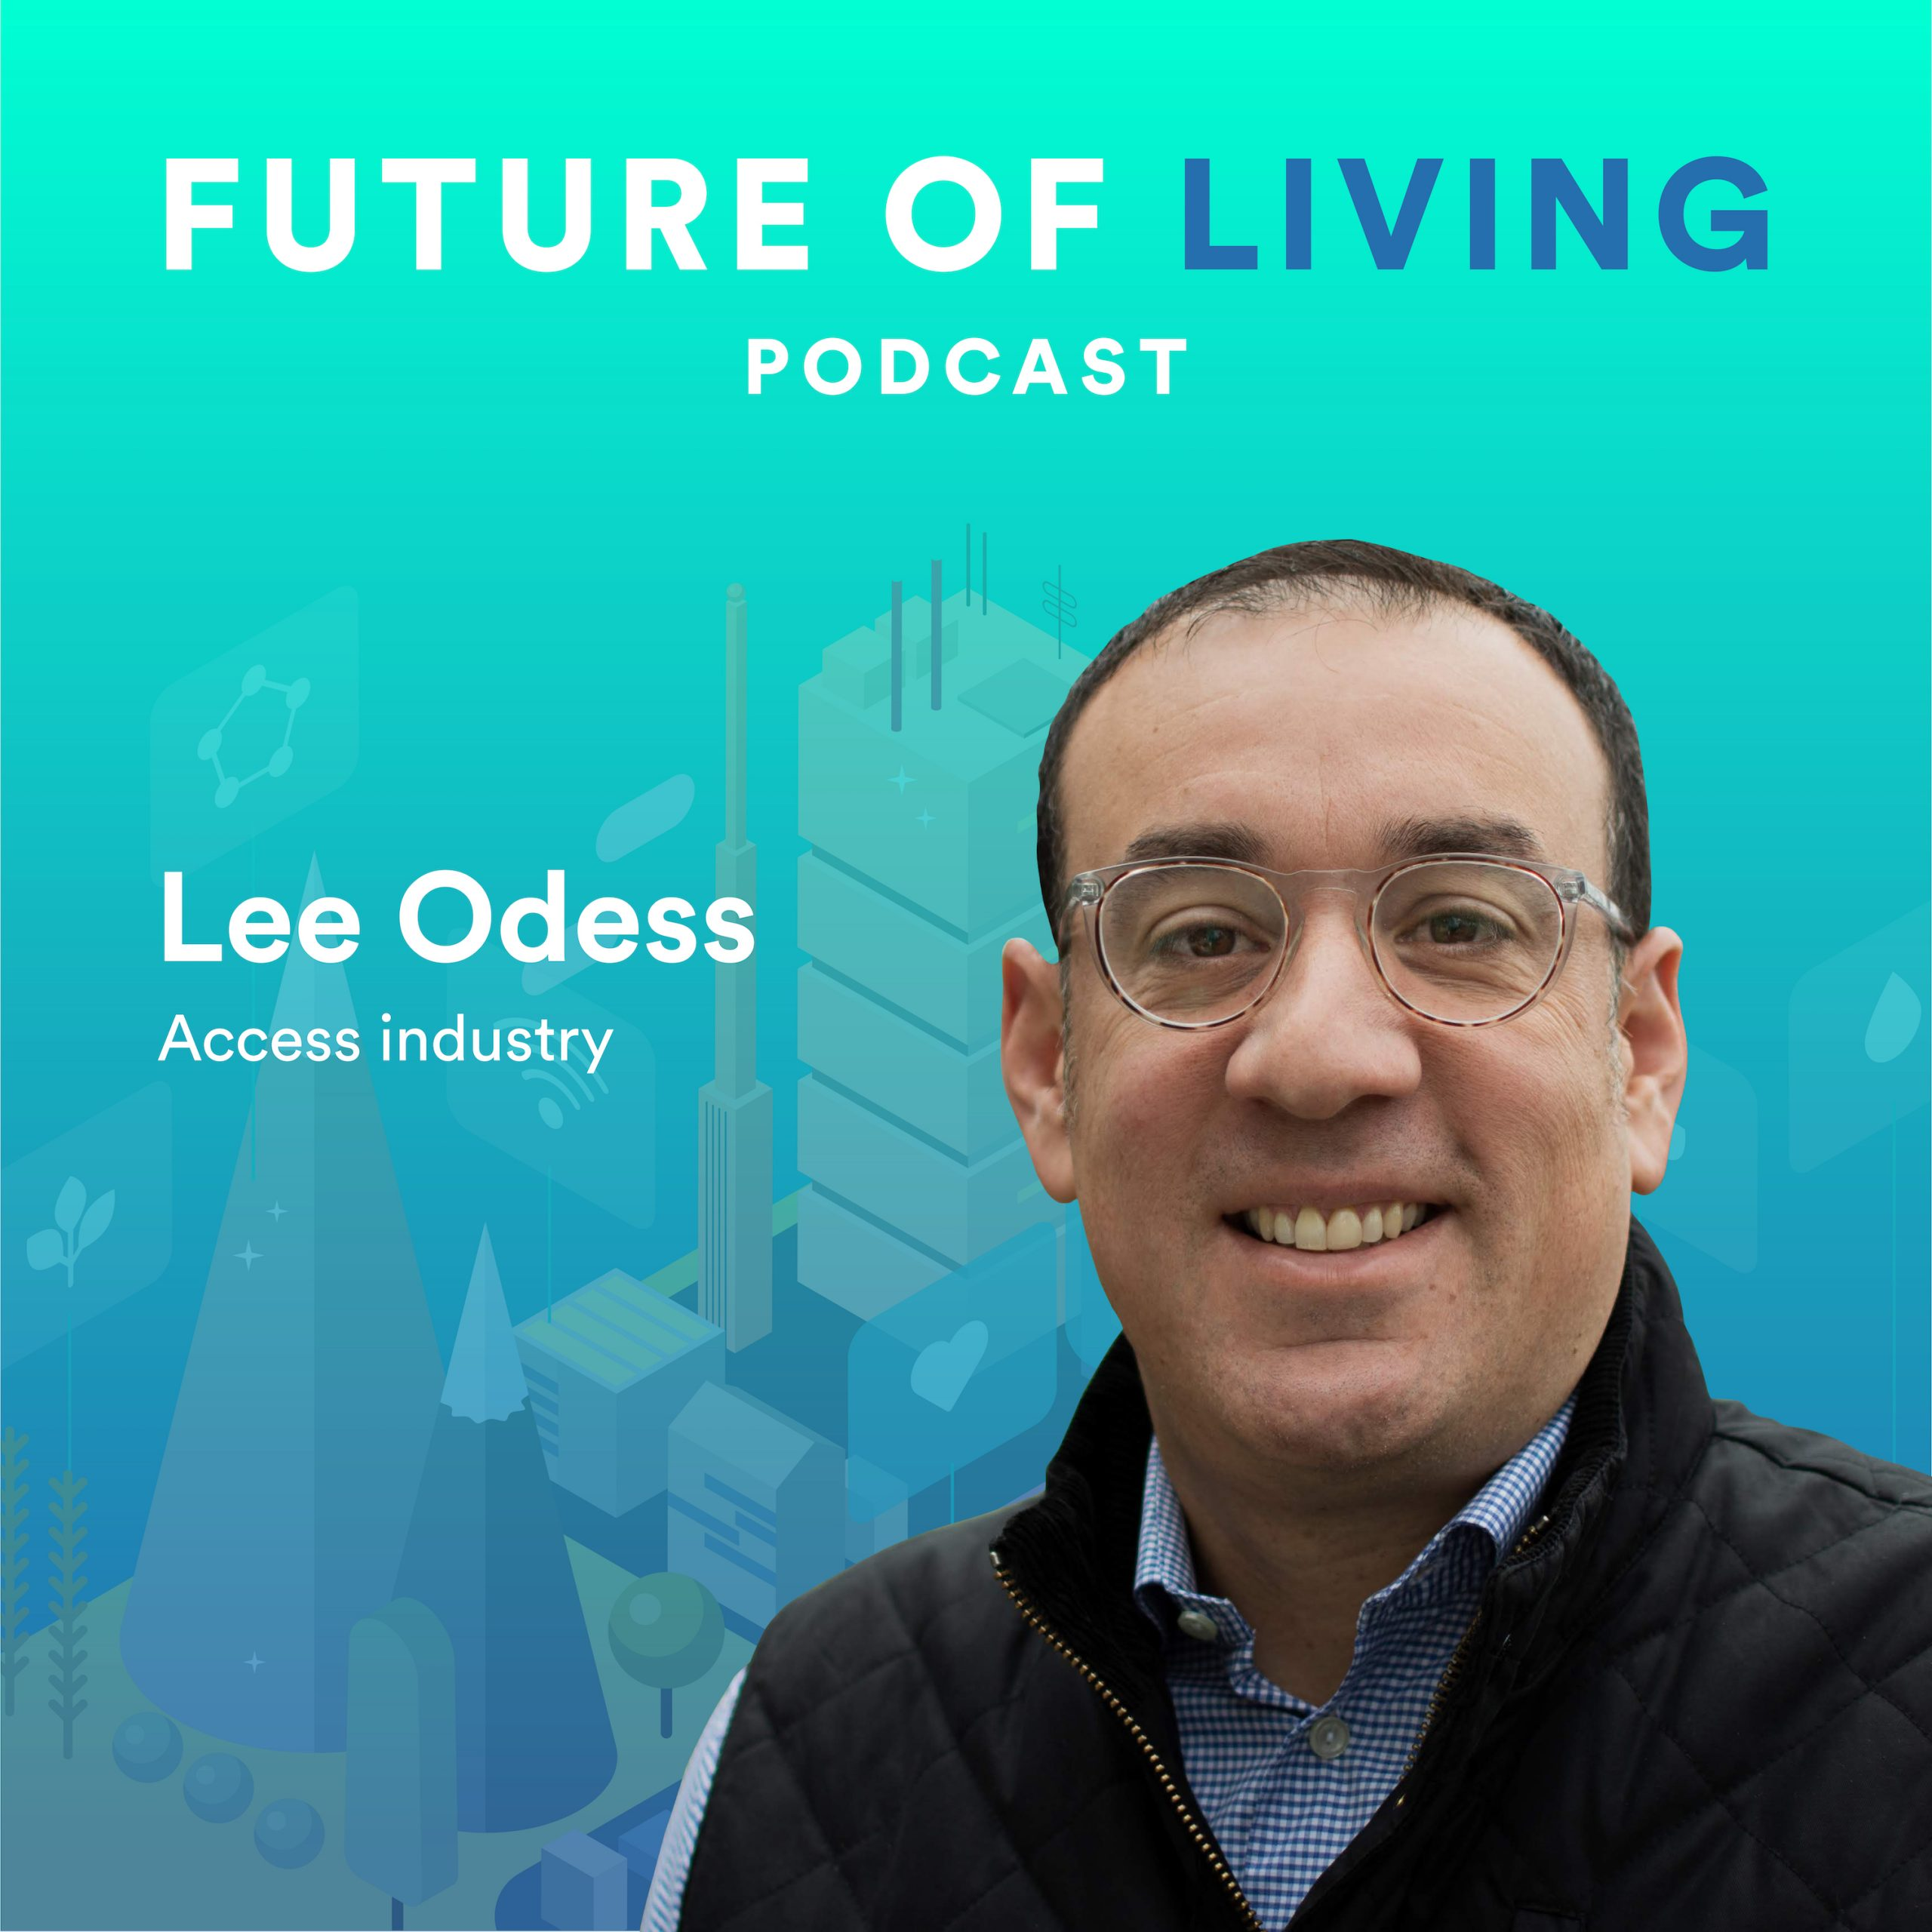 Lee Odess on the Access Industry